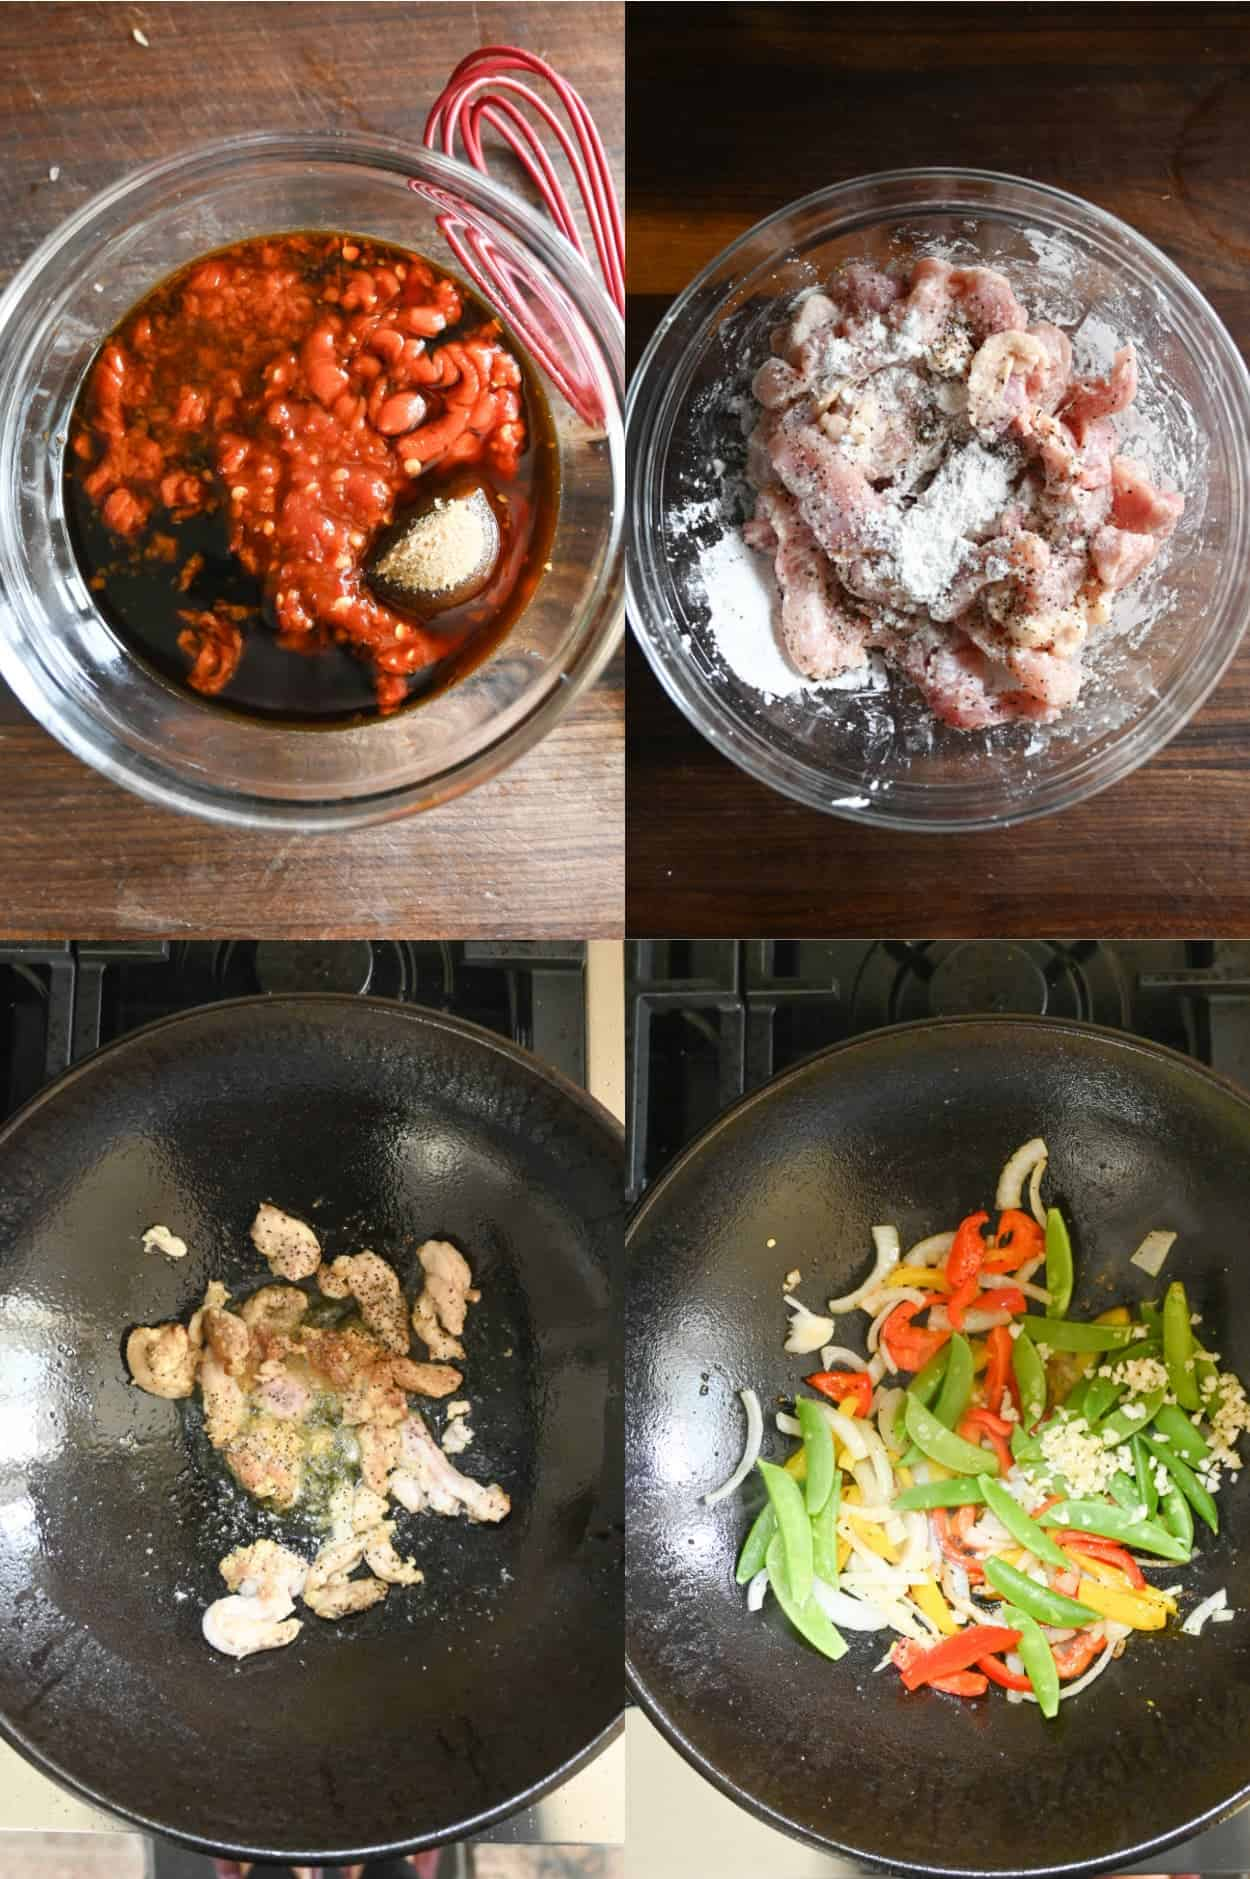 Four process photos. First one, all sauce ingredients added into a small clear bowl. Second one, raw chicken thigh pieces tossed in cornstarch in a small clear bowl. Third one, chicken cooked in a hot cast iron wok. Fourth one, veggies cooked in a cast iron wok.